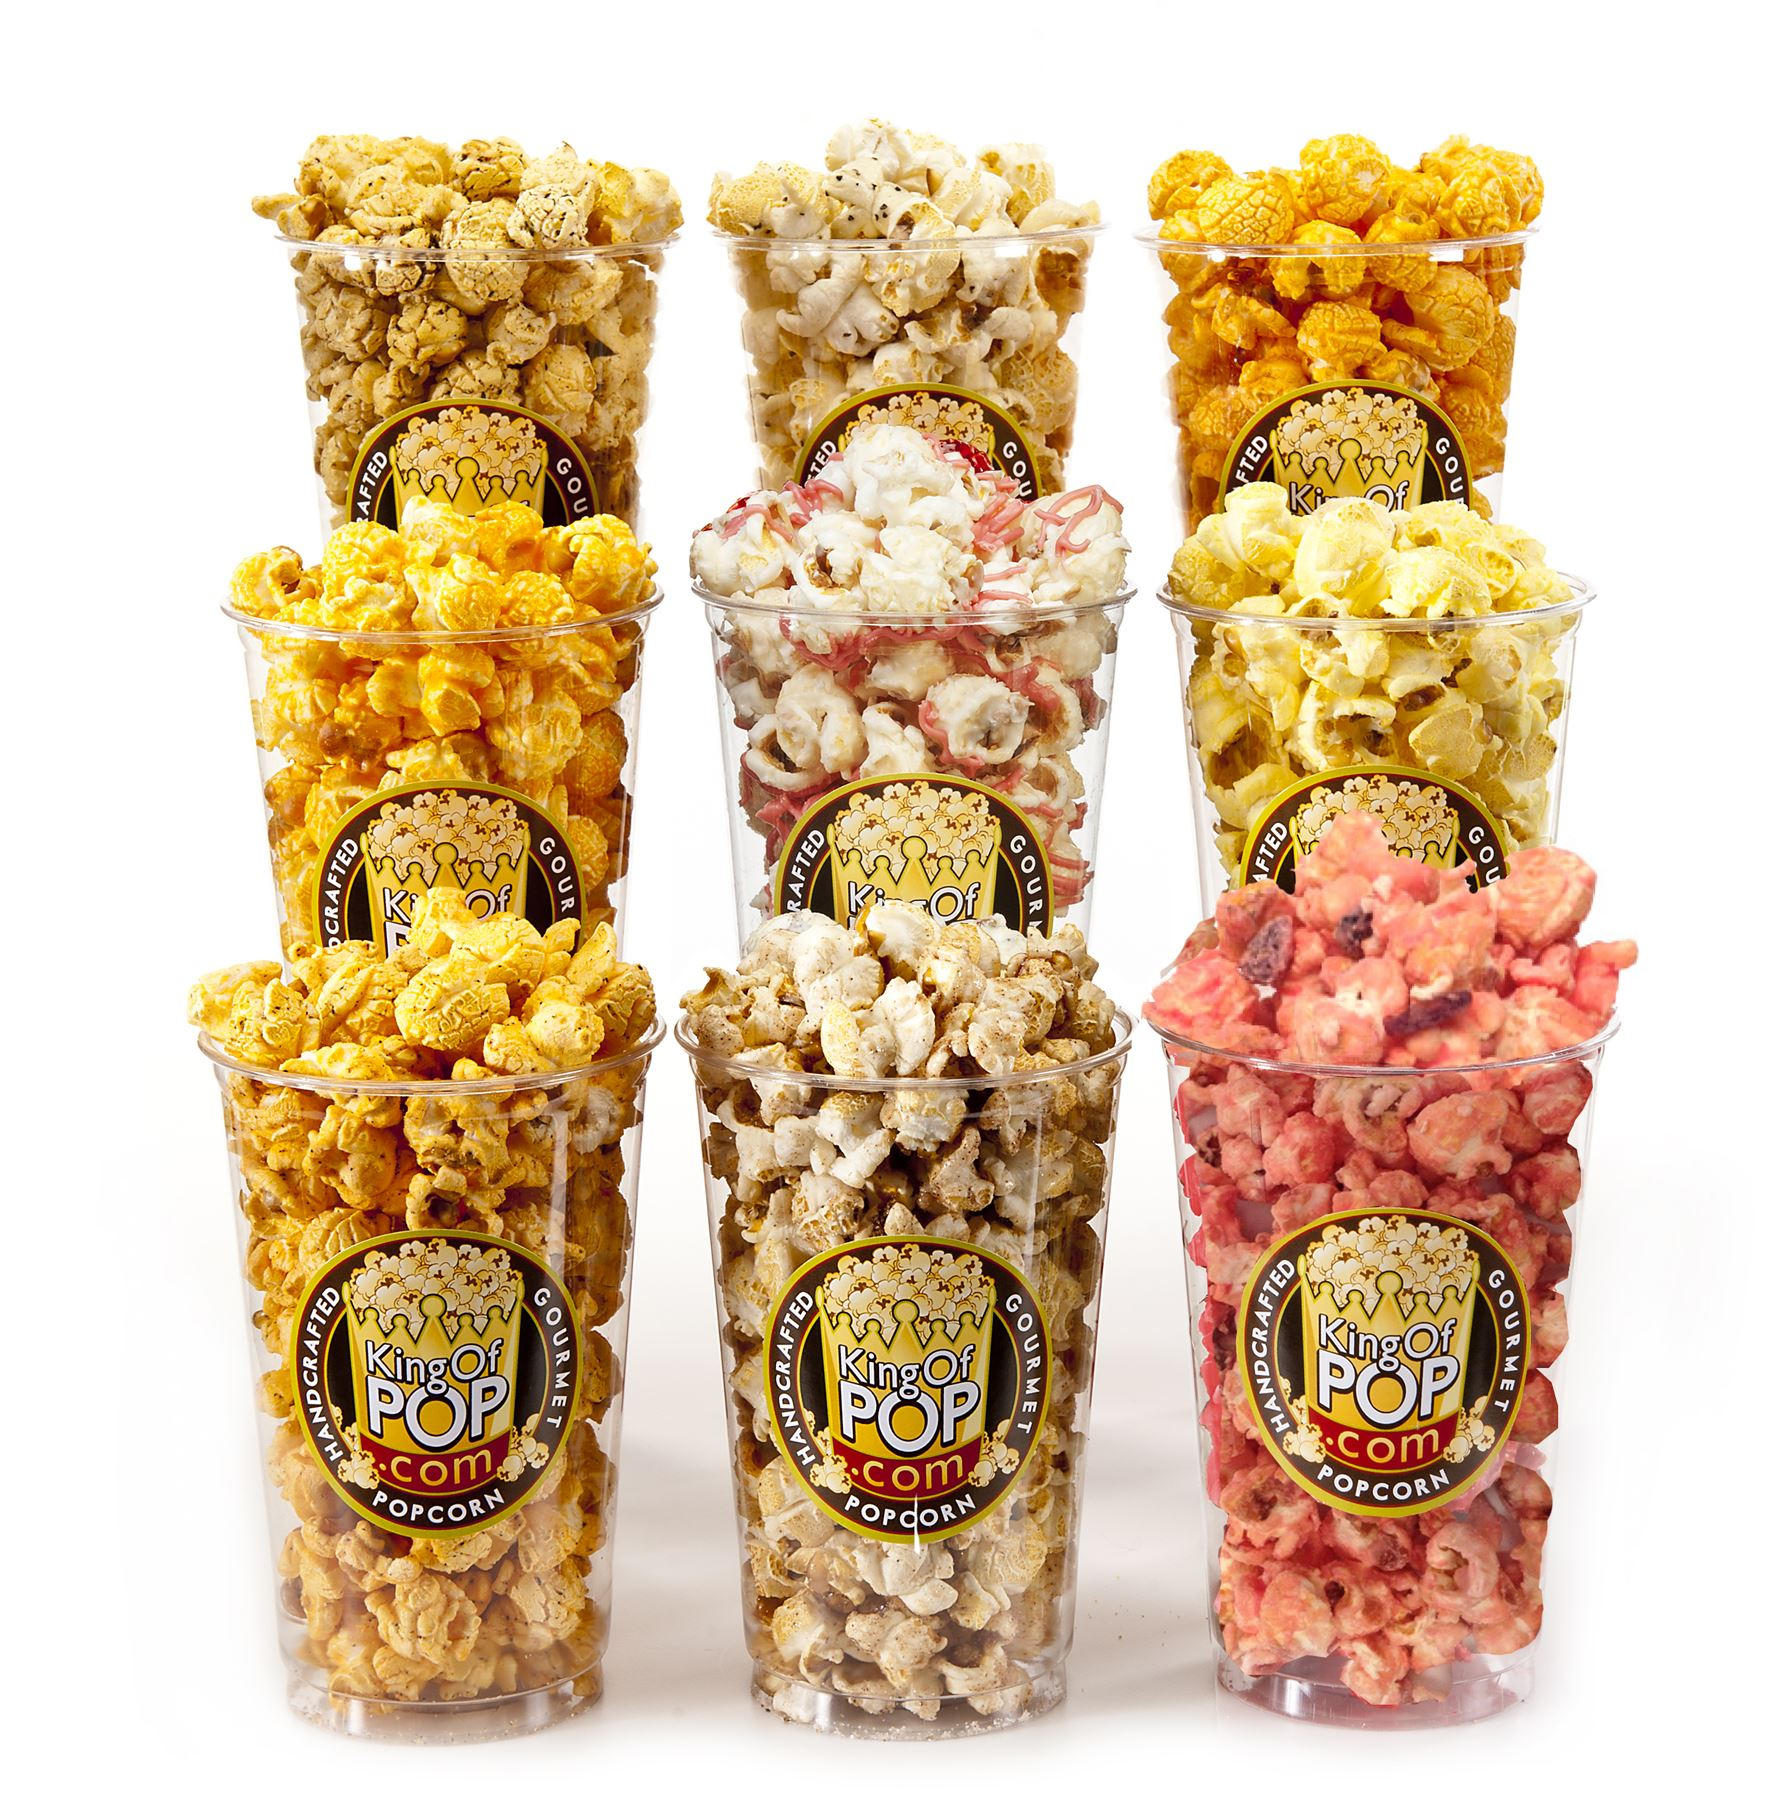 popcornFOOD Thanksgiving Feast Popcorn from Kingofpop.com